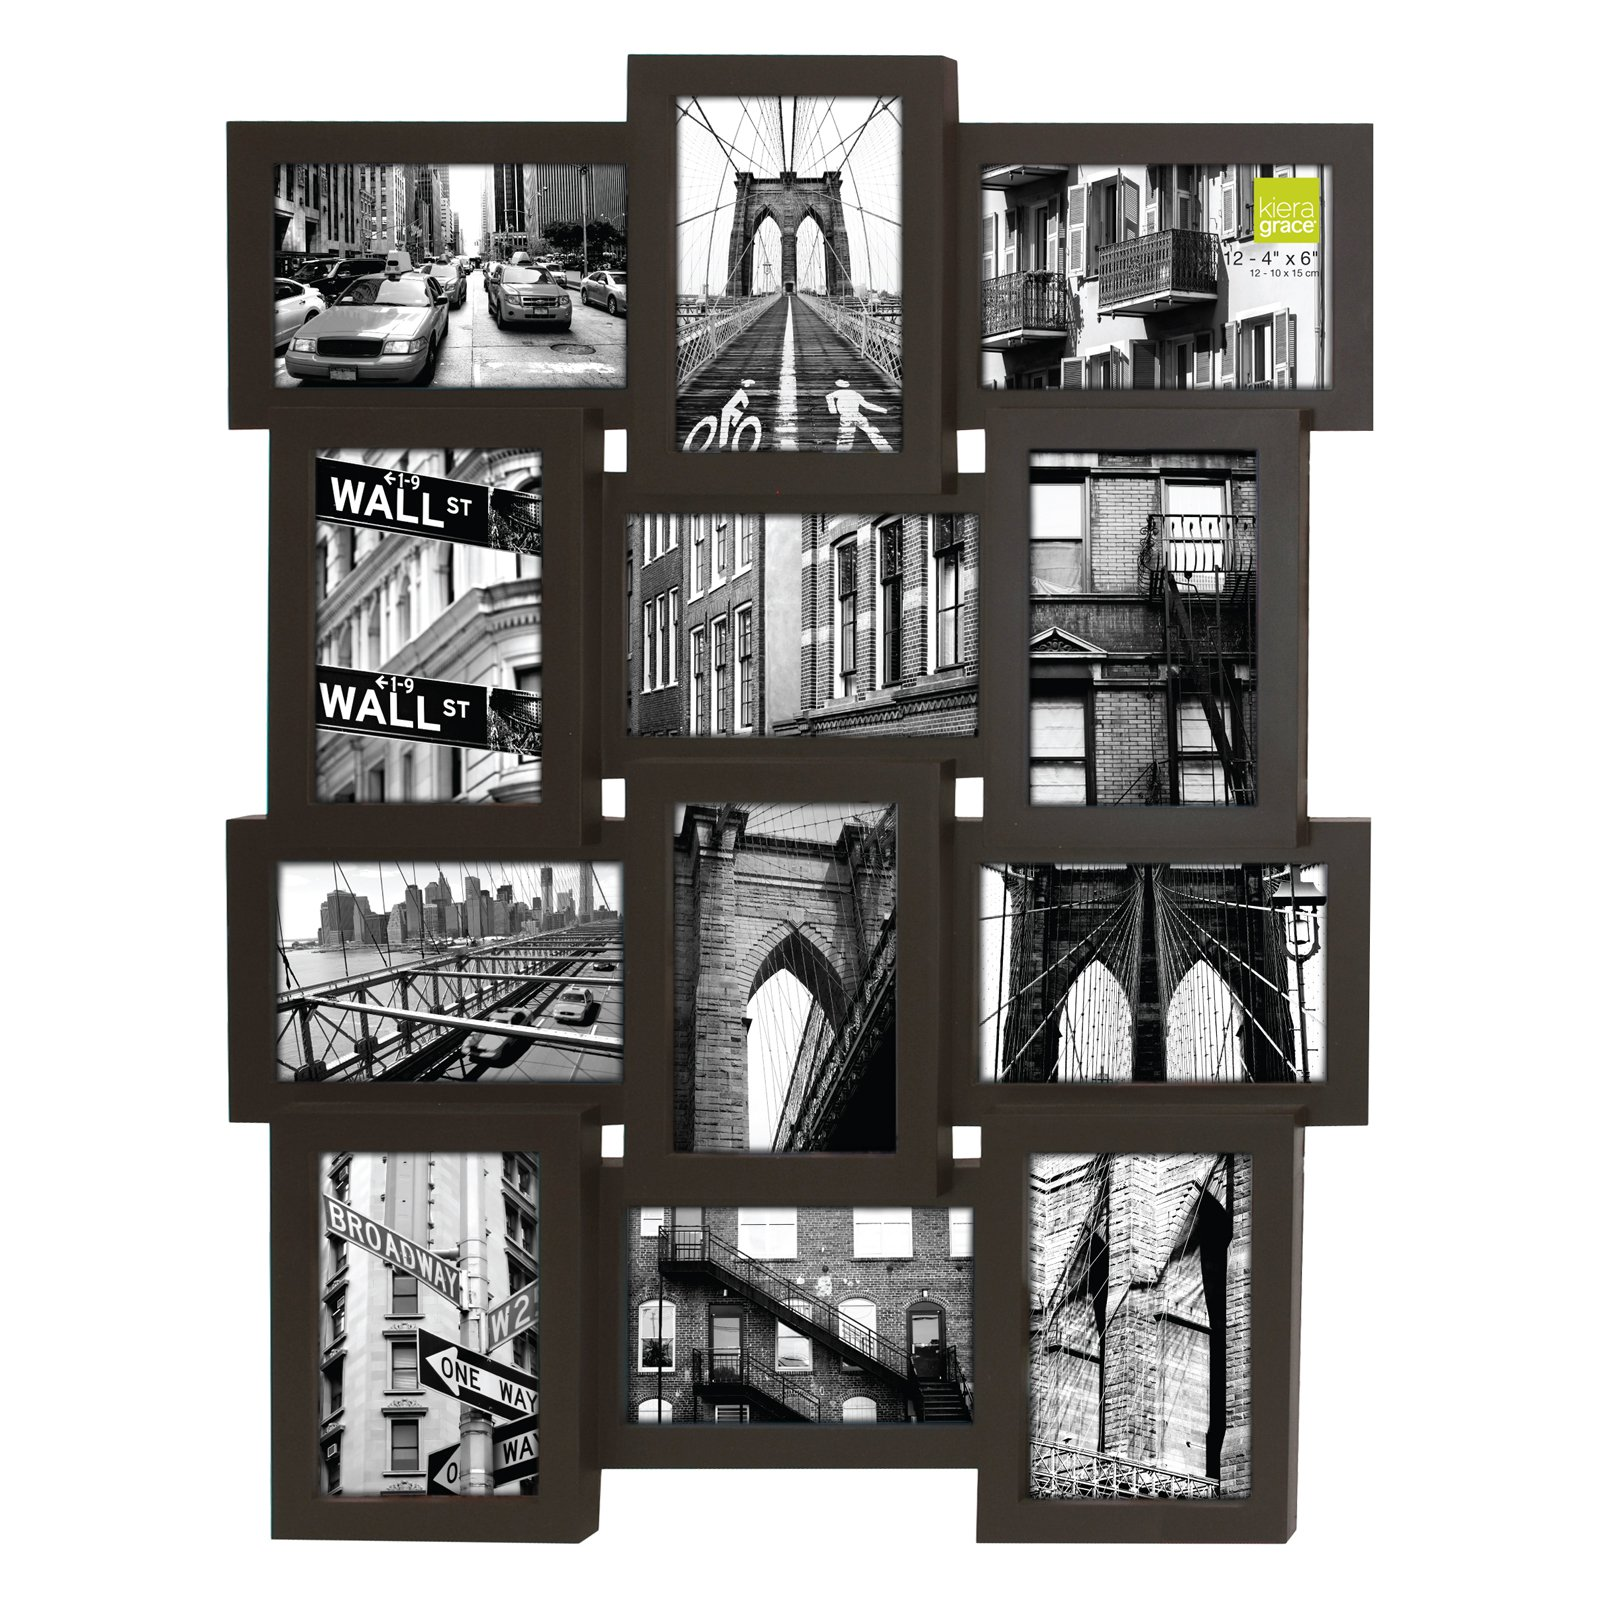 AZ Trading Array Collage Wall Frame - Holds 12 Photos